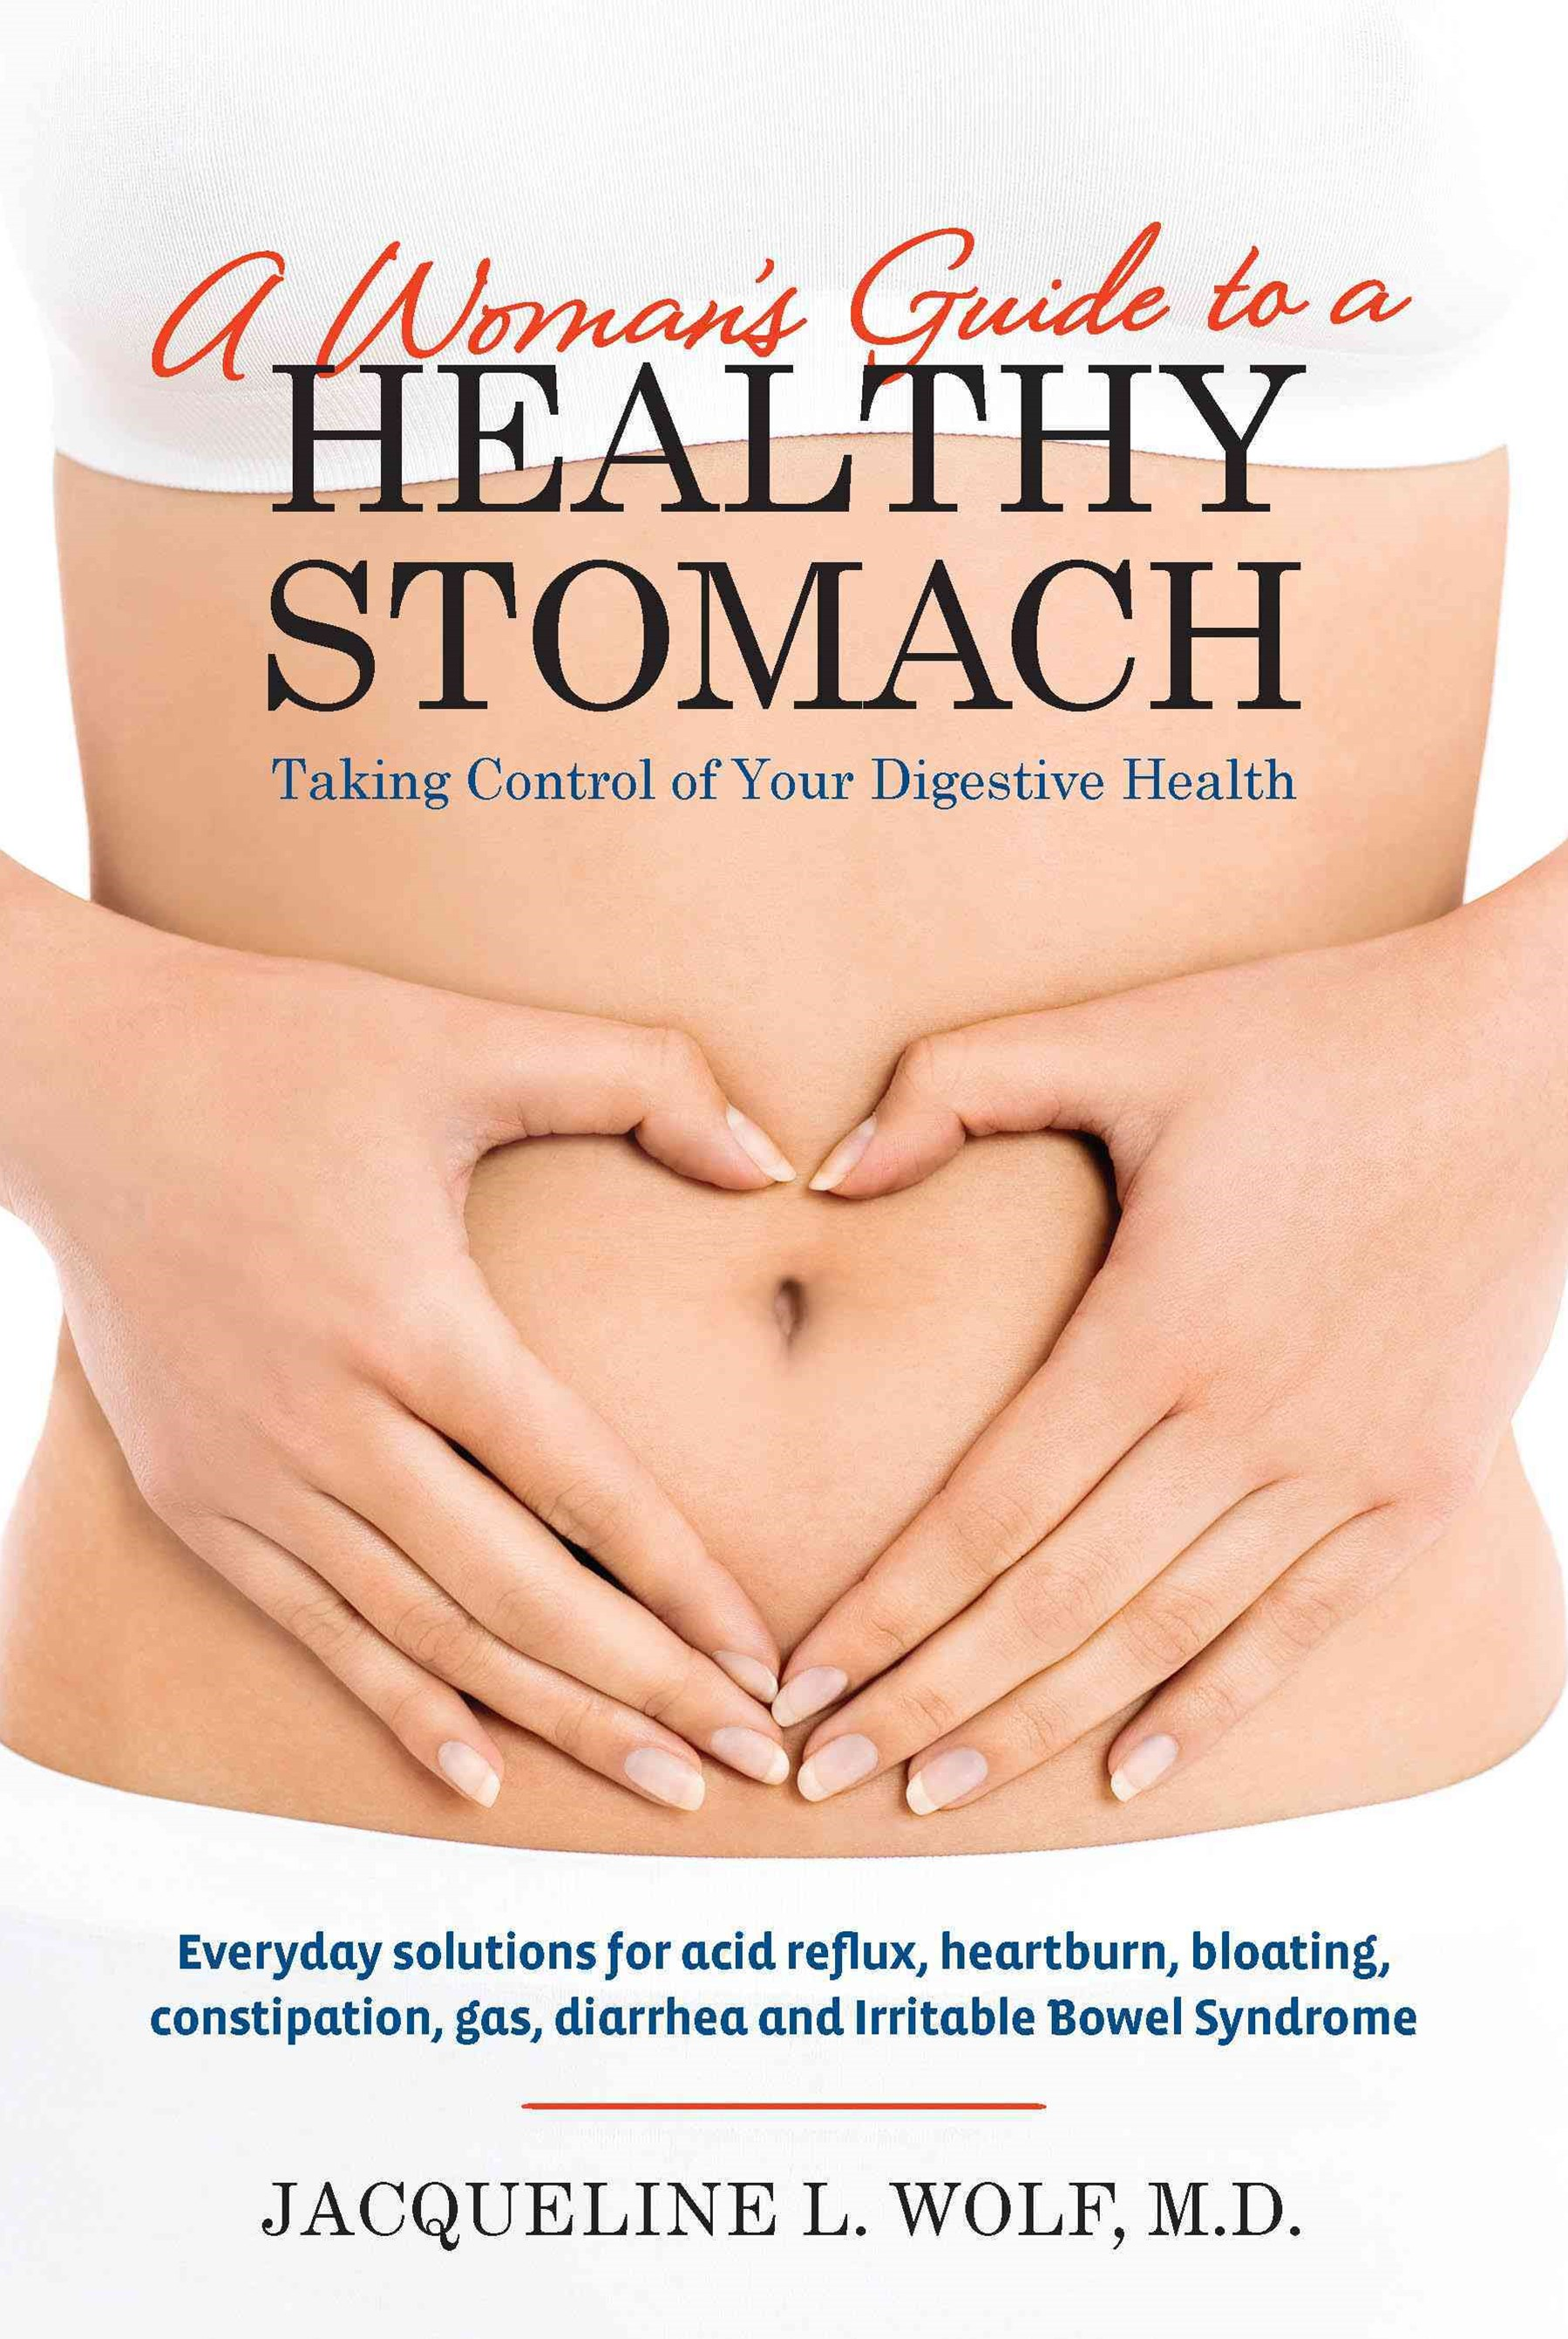 A Woman's Guide to a Healthy Stomach